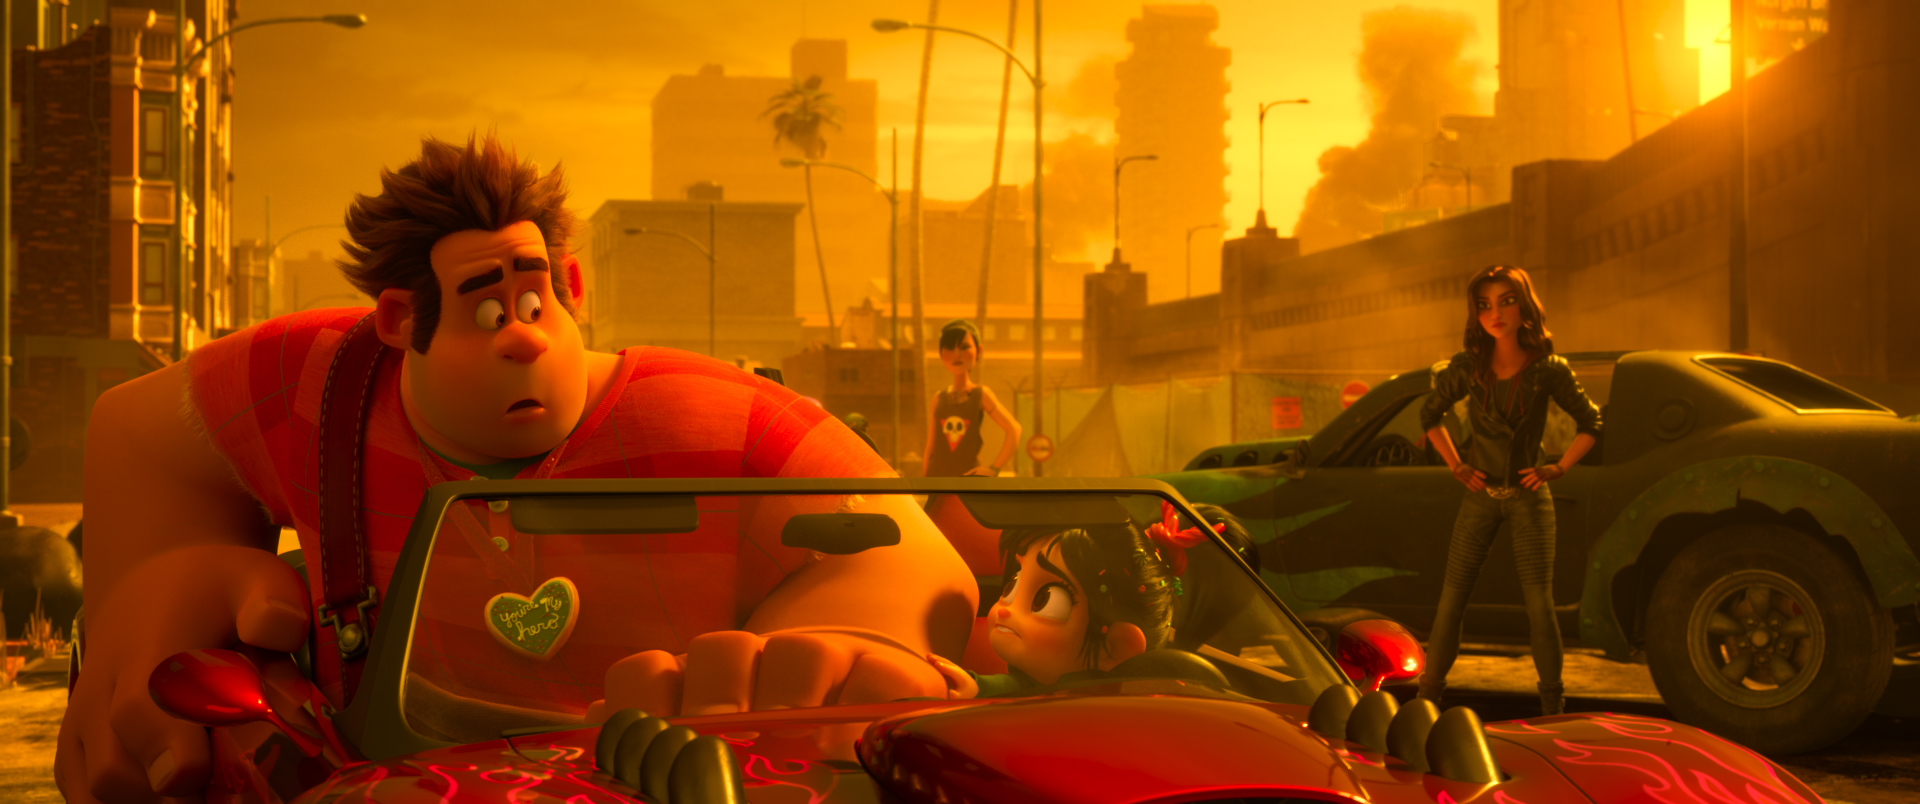 """Ralph (left, voiced by John C. Reilly) and Vanellope (center, voiced by Sarah Silverman) encounter the tough racer Shank (right, voiced by Gal Gadot) in a scene from Disney's animated comedy """"Ralph Breaks the Internet."""" (Photo courtesy Walt Disney Pictures.)"""